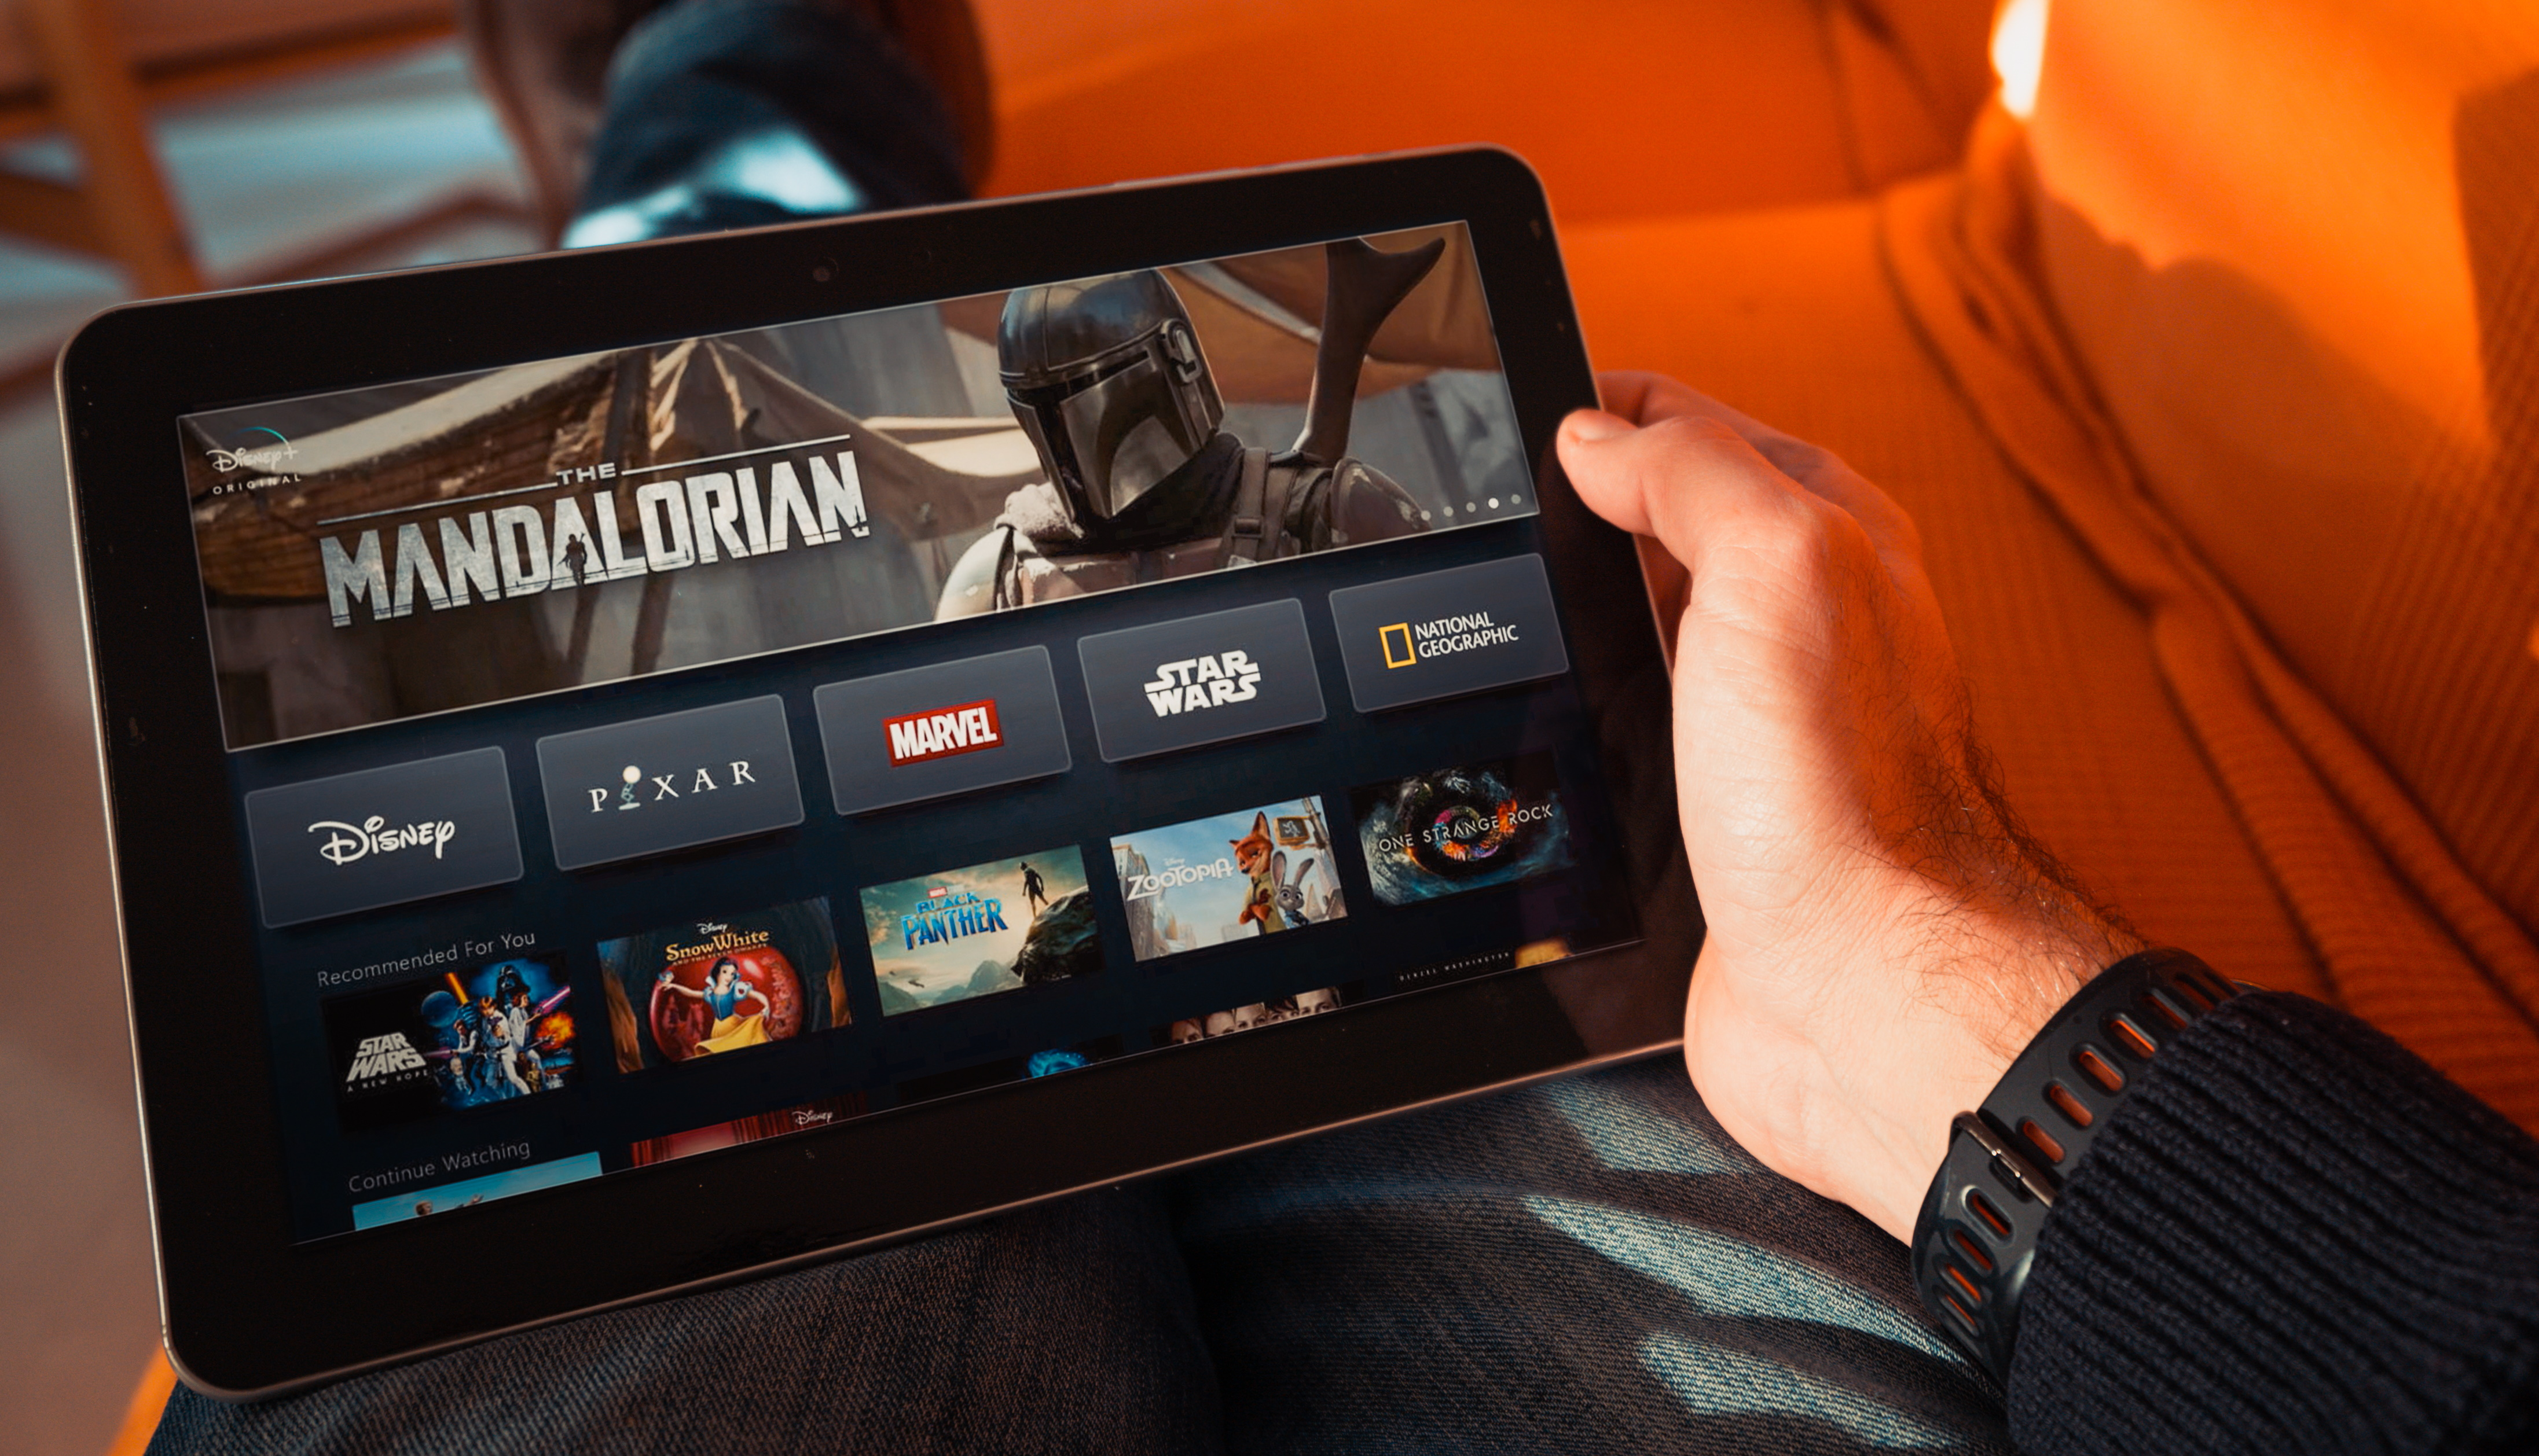 How To Watch The Mandalorian Online Stream The Star Wars Show Right Now Techradar